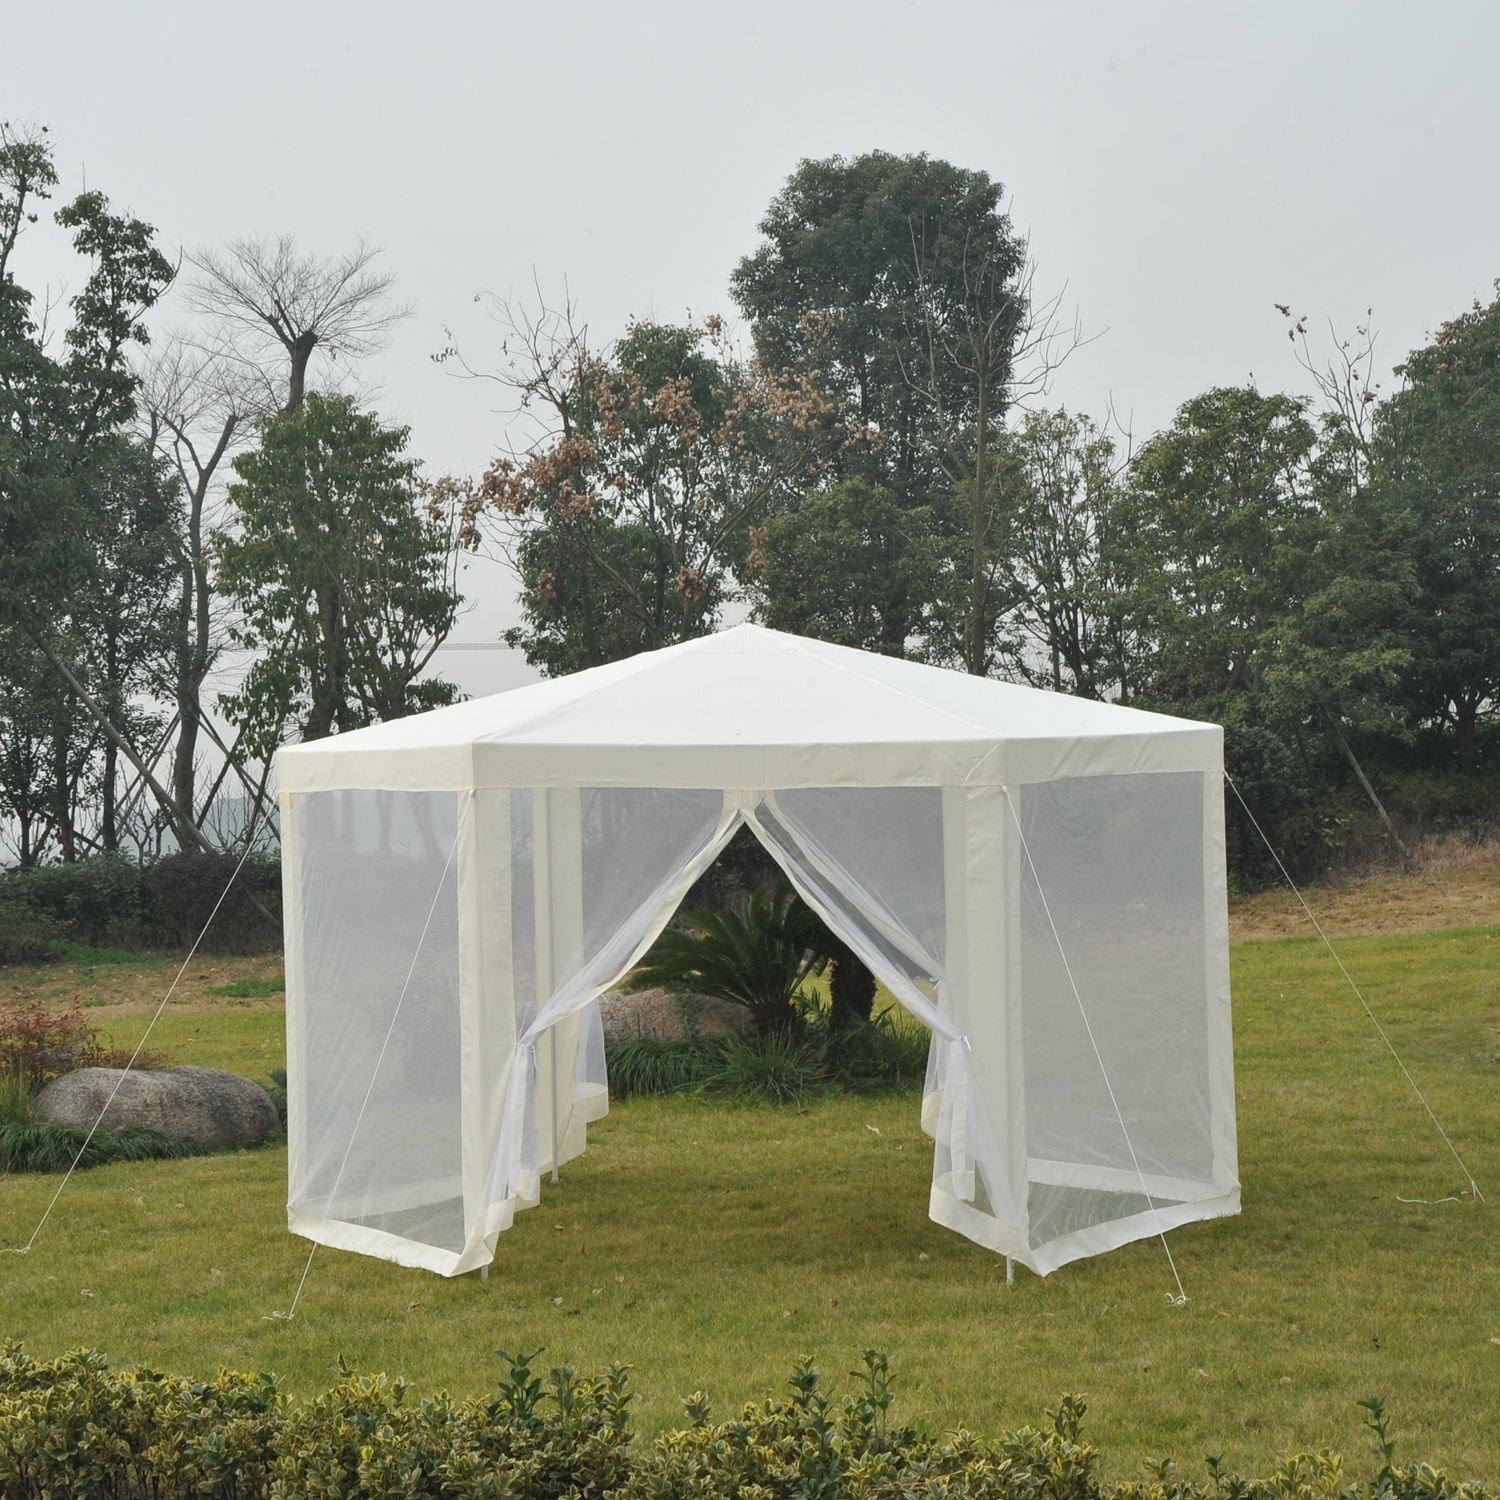 New MTN-G Patio Gazebo Netting Canopy Garden Party Tent Steel Outdoor-Beige